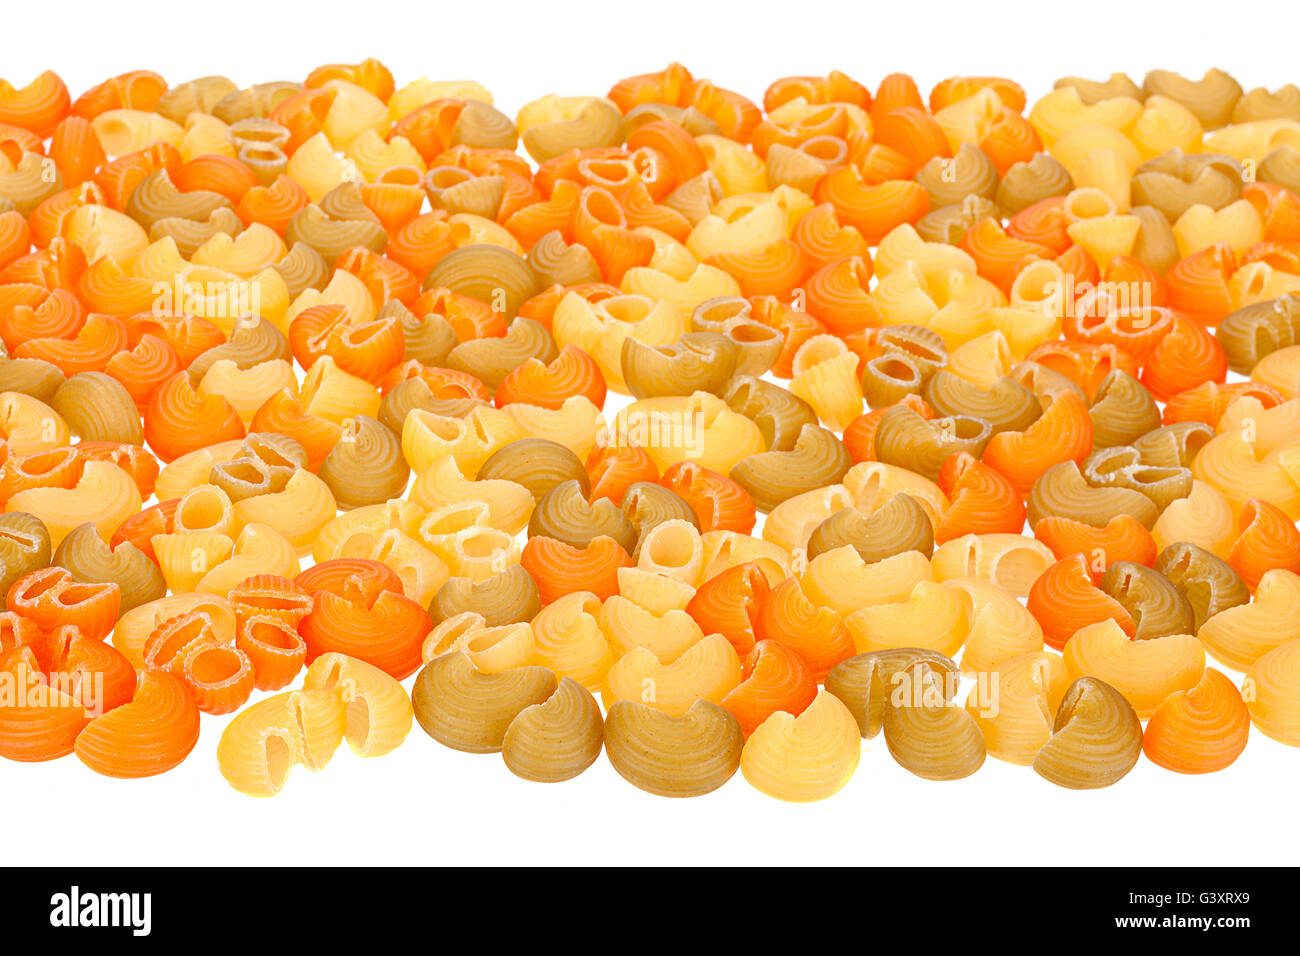 Multicolor dry swirl pasta isolated on white - Stock Image